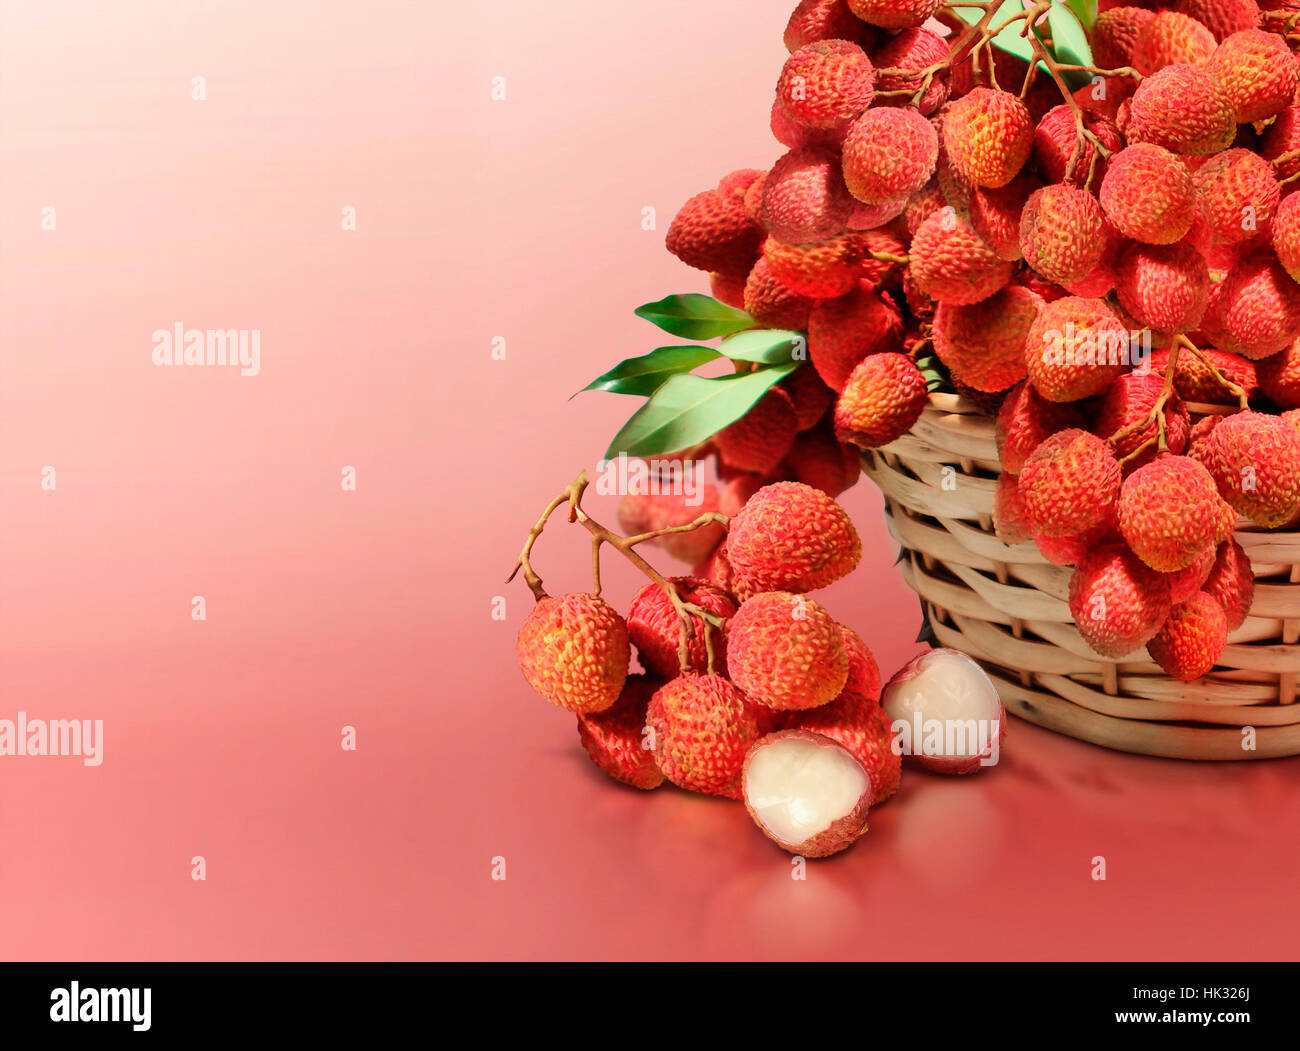 Lychee on red solid background - Stock Image